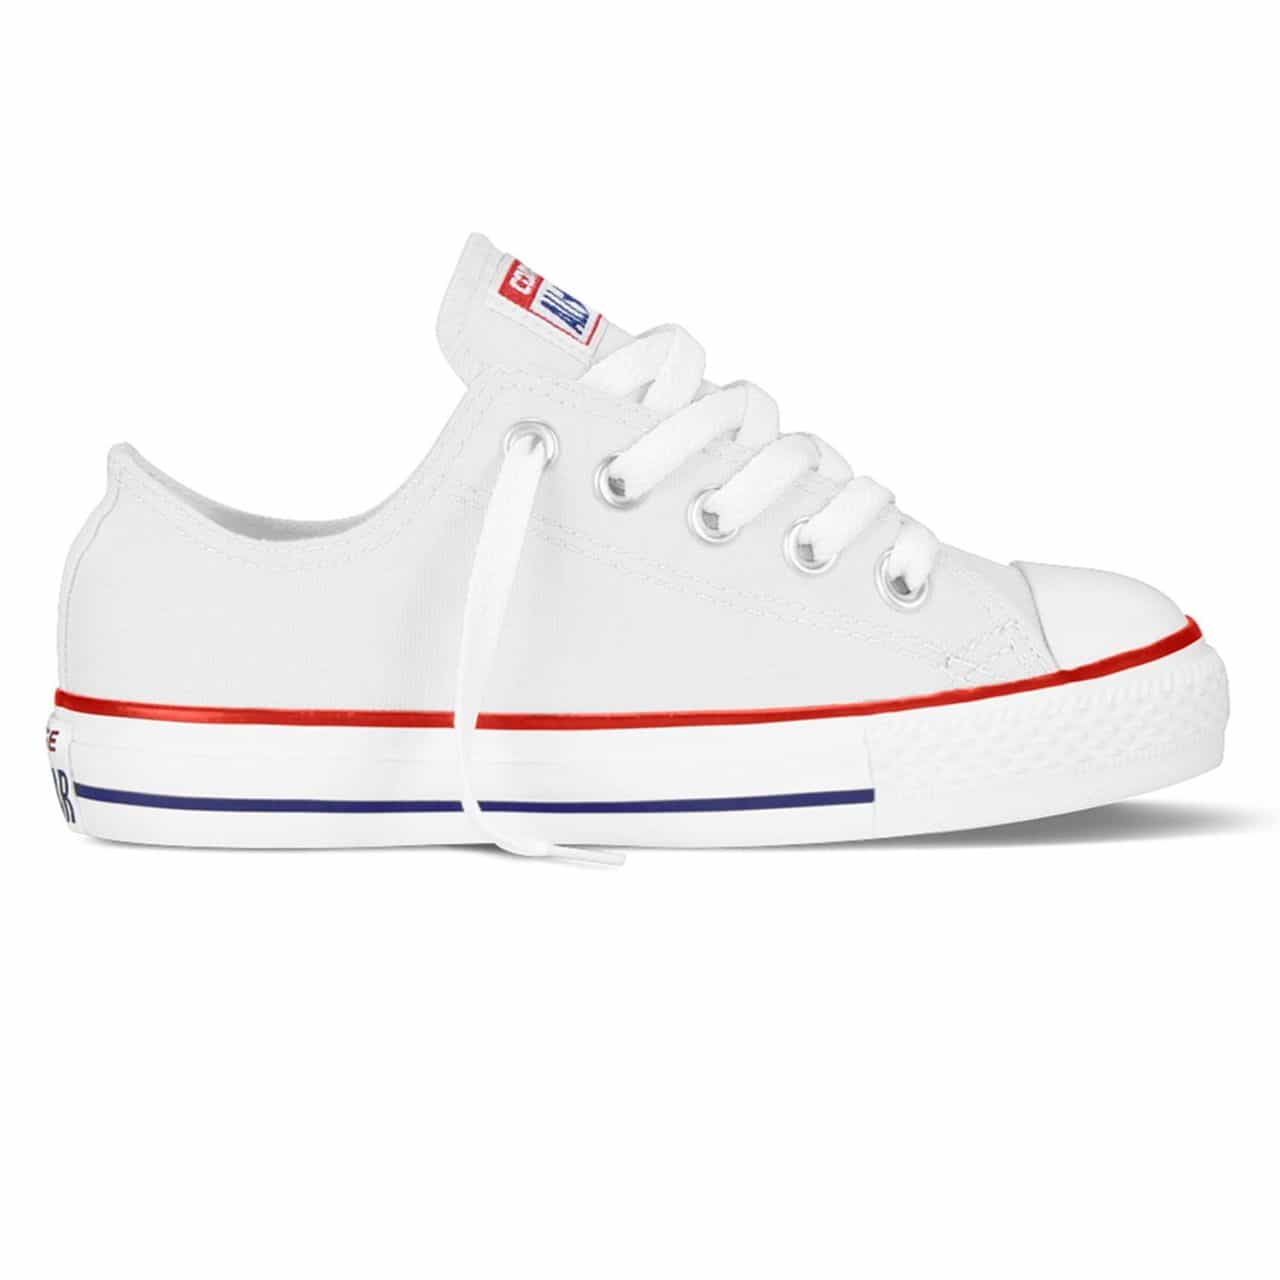 TENISI ORIGINALI CONVERSE YTH C/T ALL STAR - 3J256C